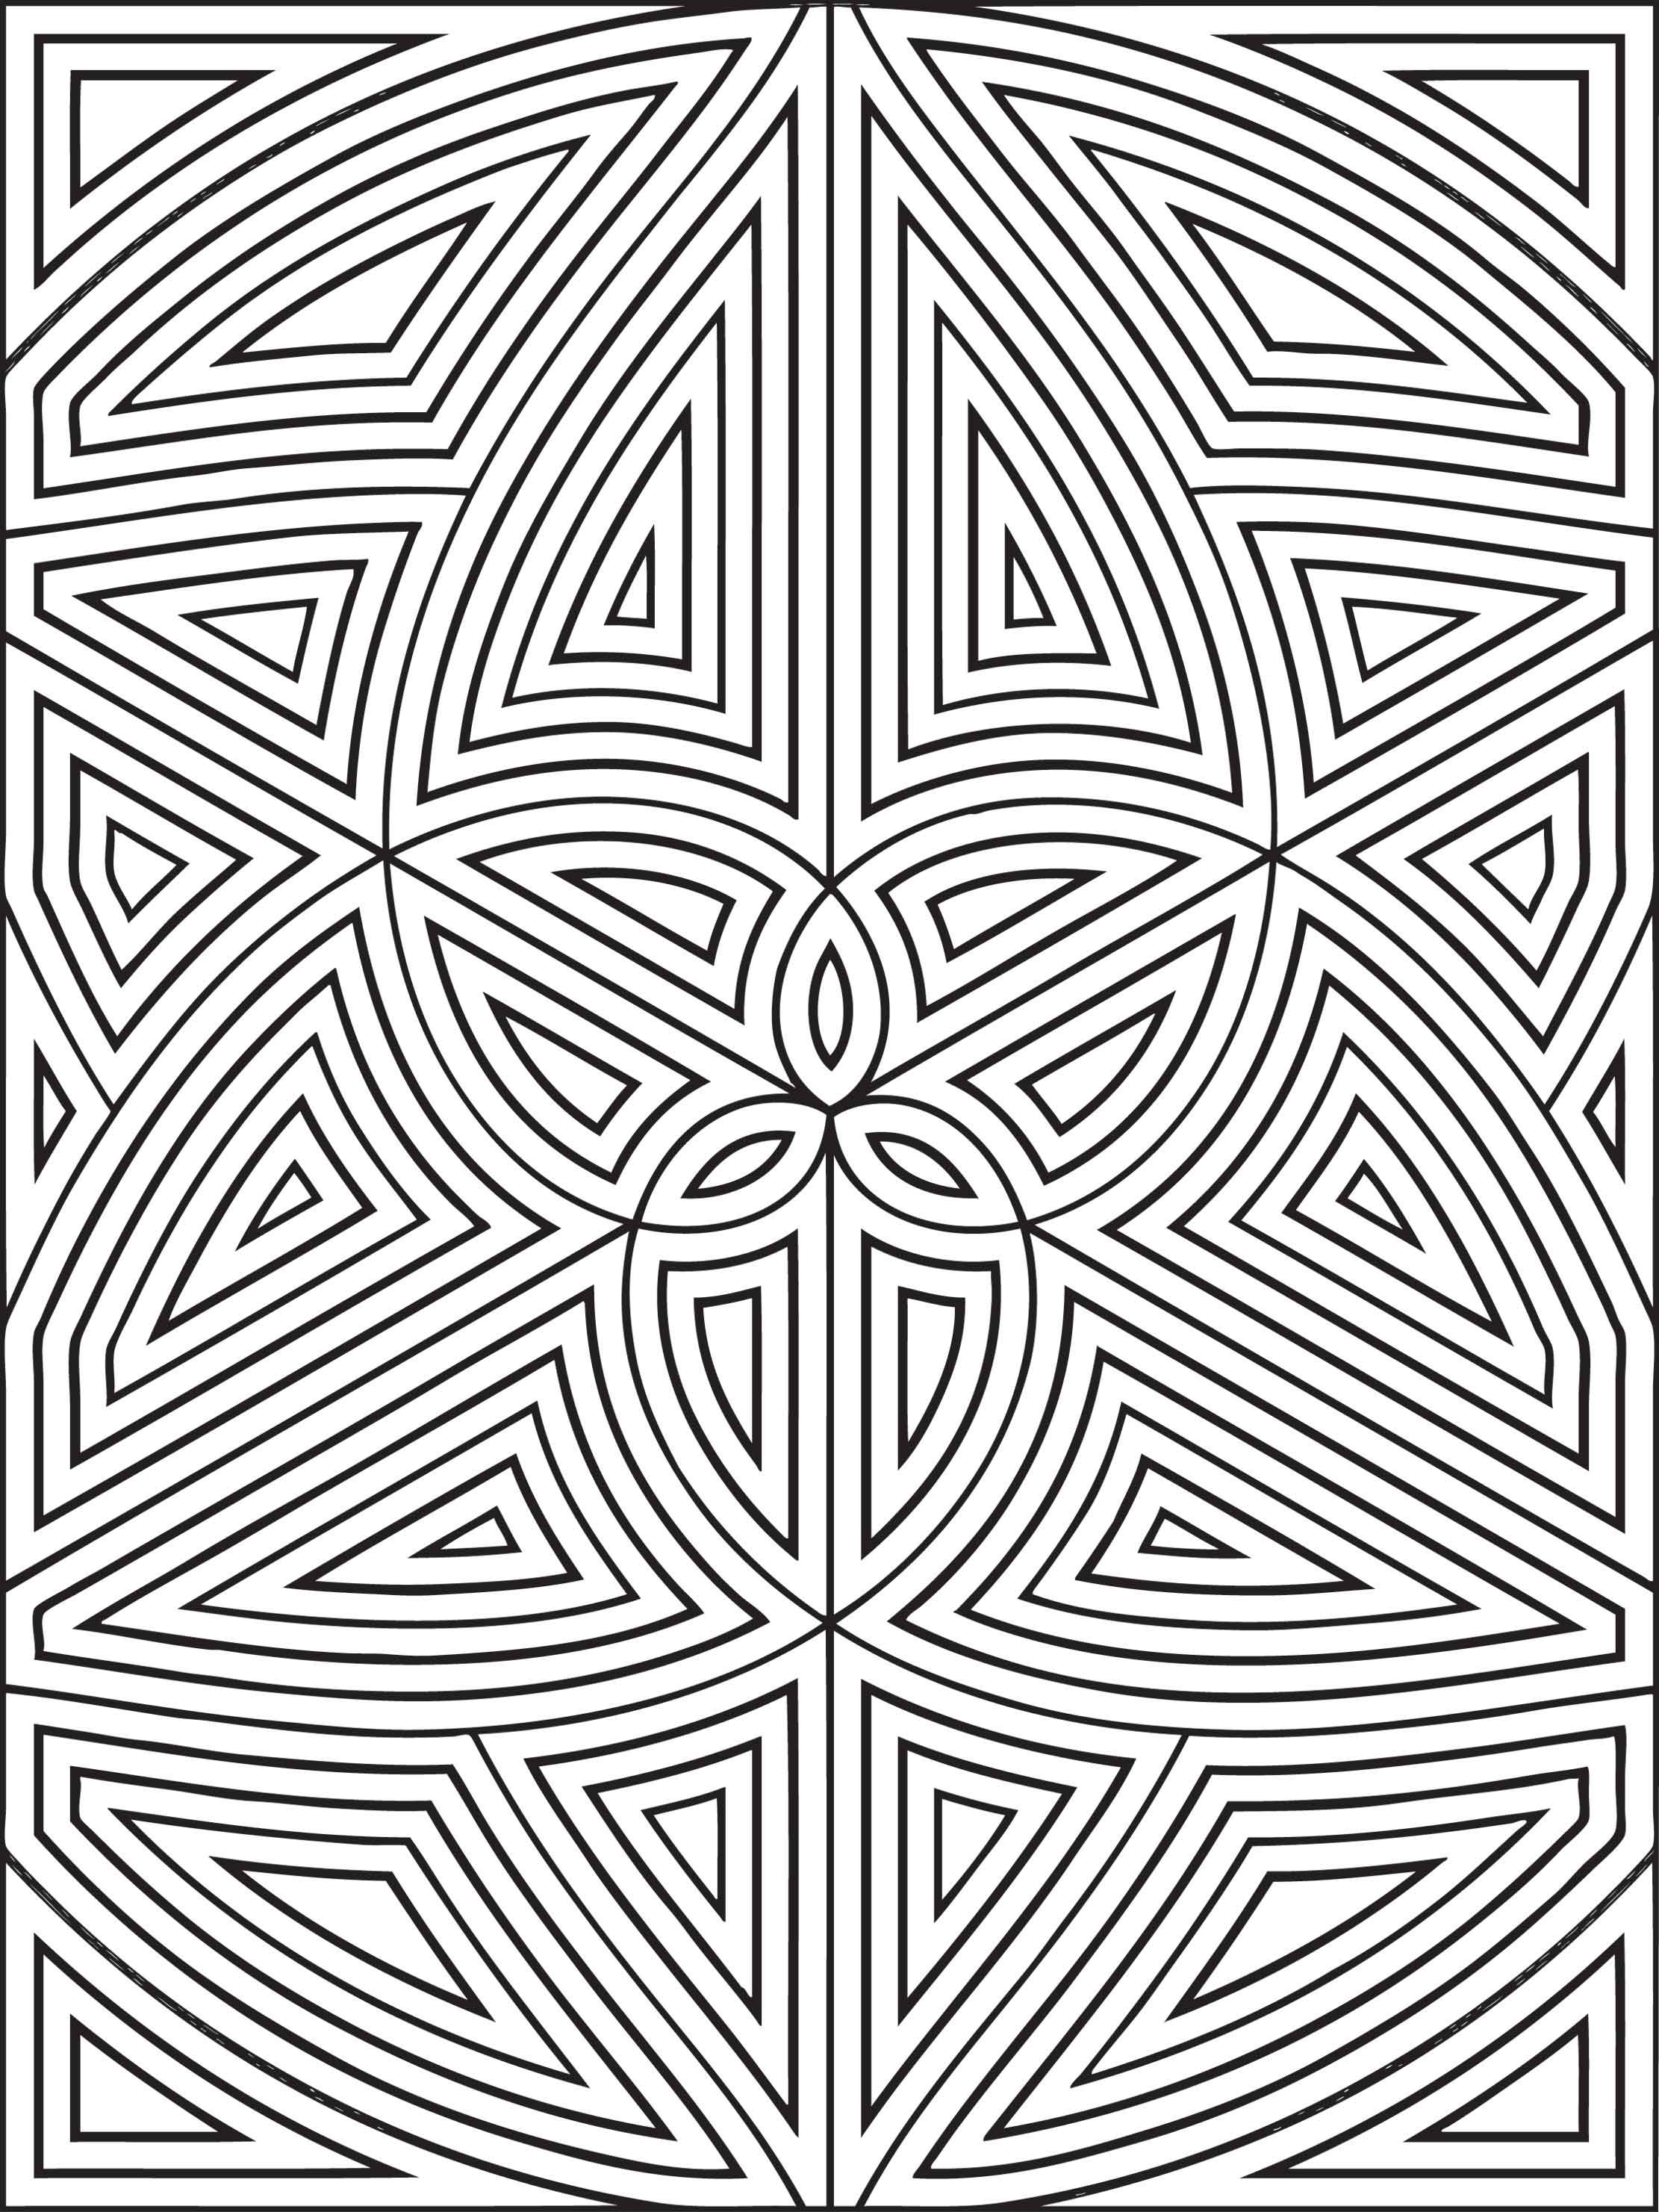 image relating to Printable Geometric Coloring Pages referred to as Cost-free Printable Geometric Coloring Internet pages For Youngsters